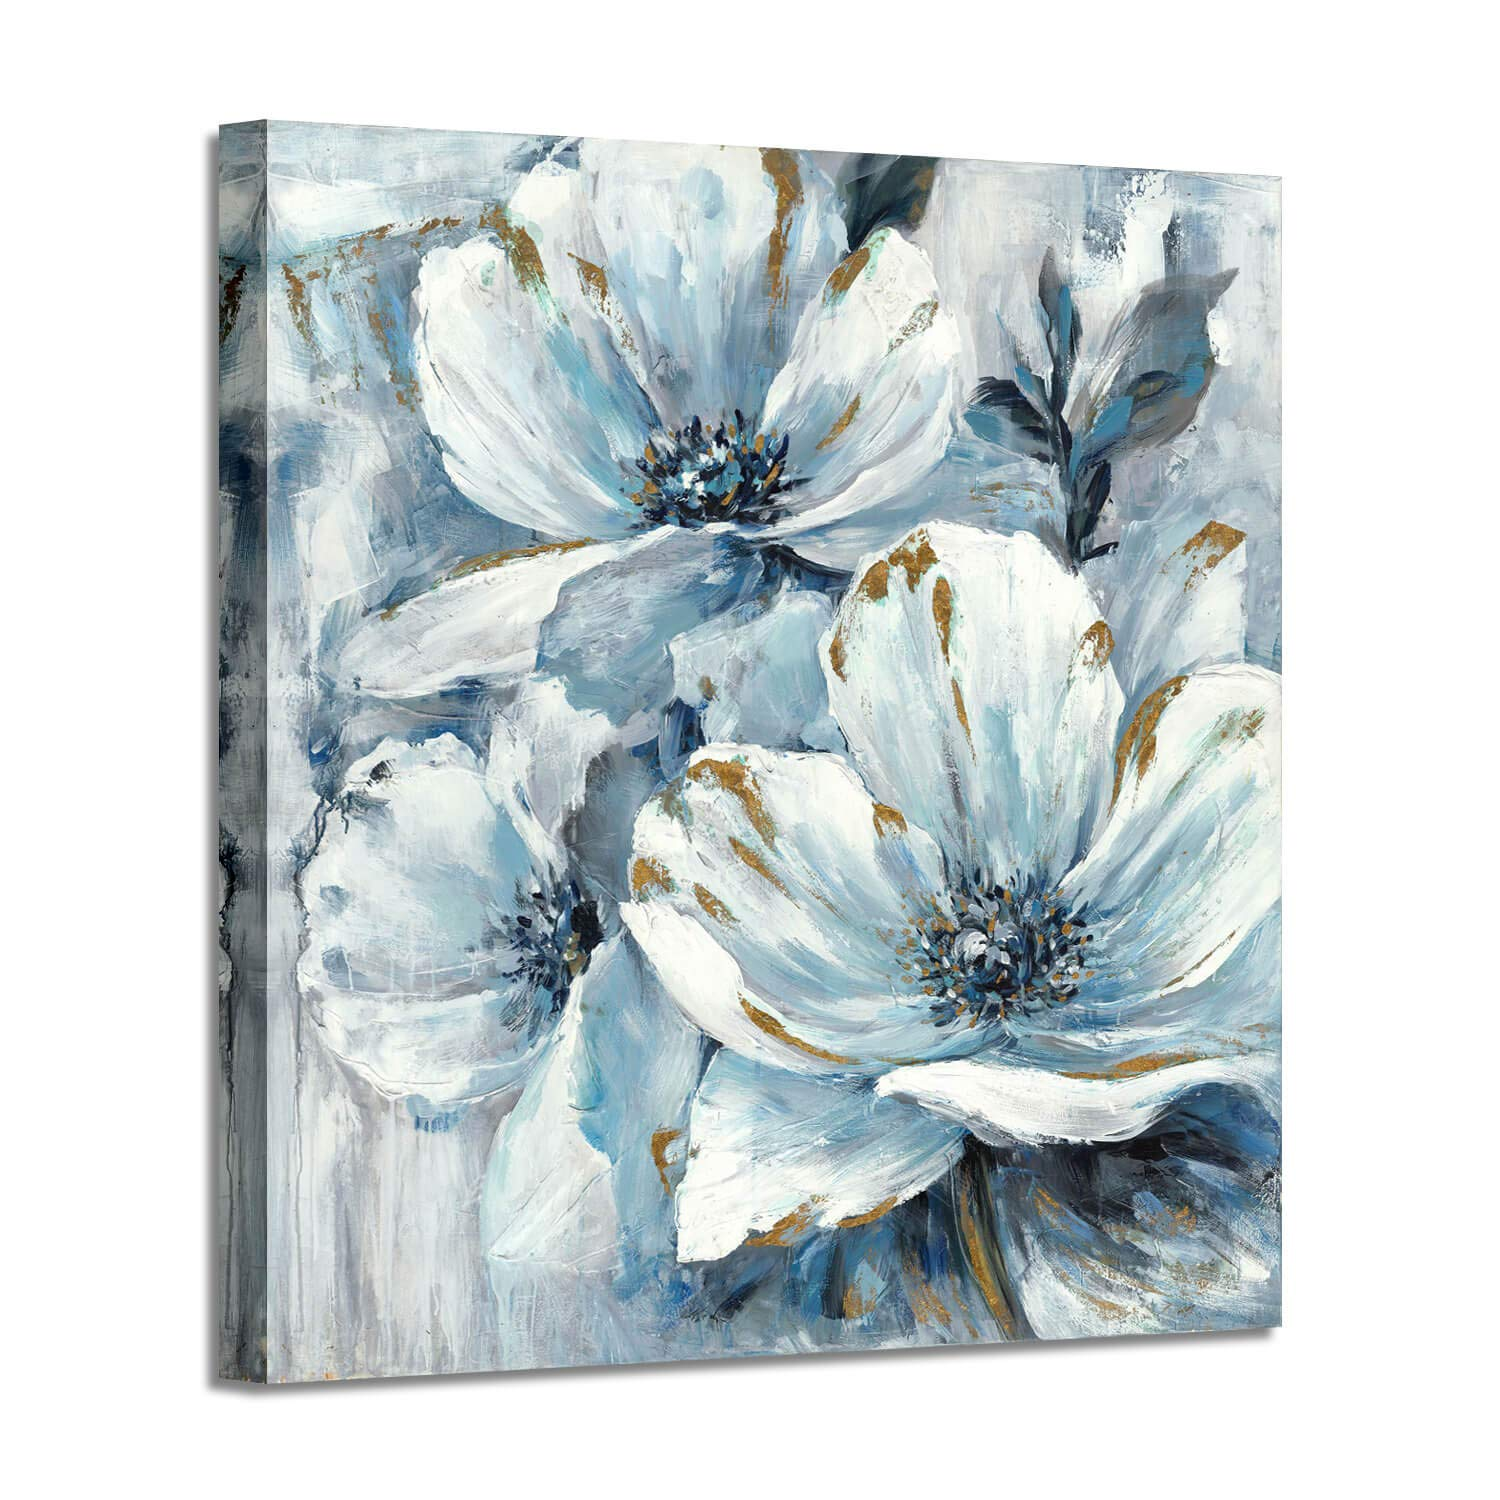 "Flowers Artwork Painting Prints Pictures: Abstract Lily Pad Prints Canvas Wall Art for Bathroom (12"" W x 12"" H, Multi-Sized)"